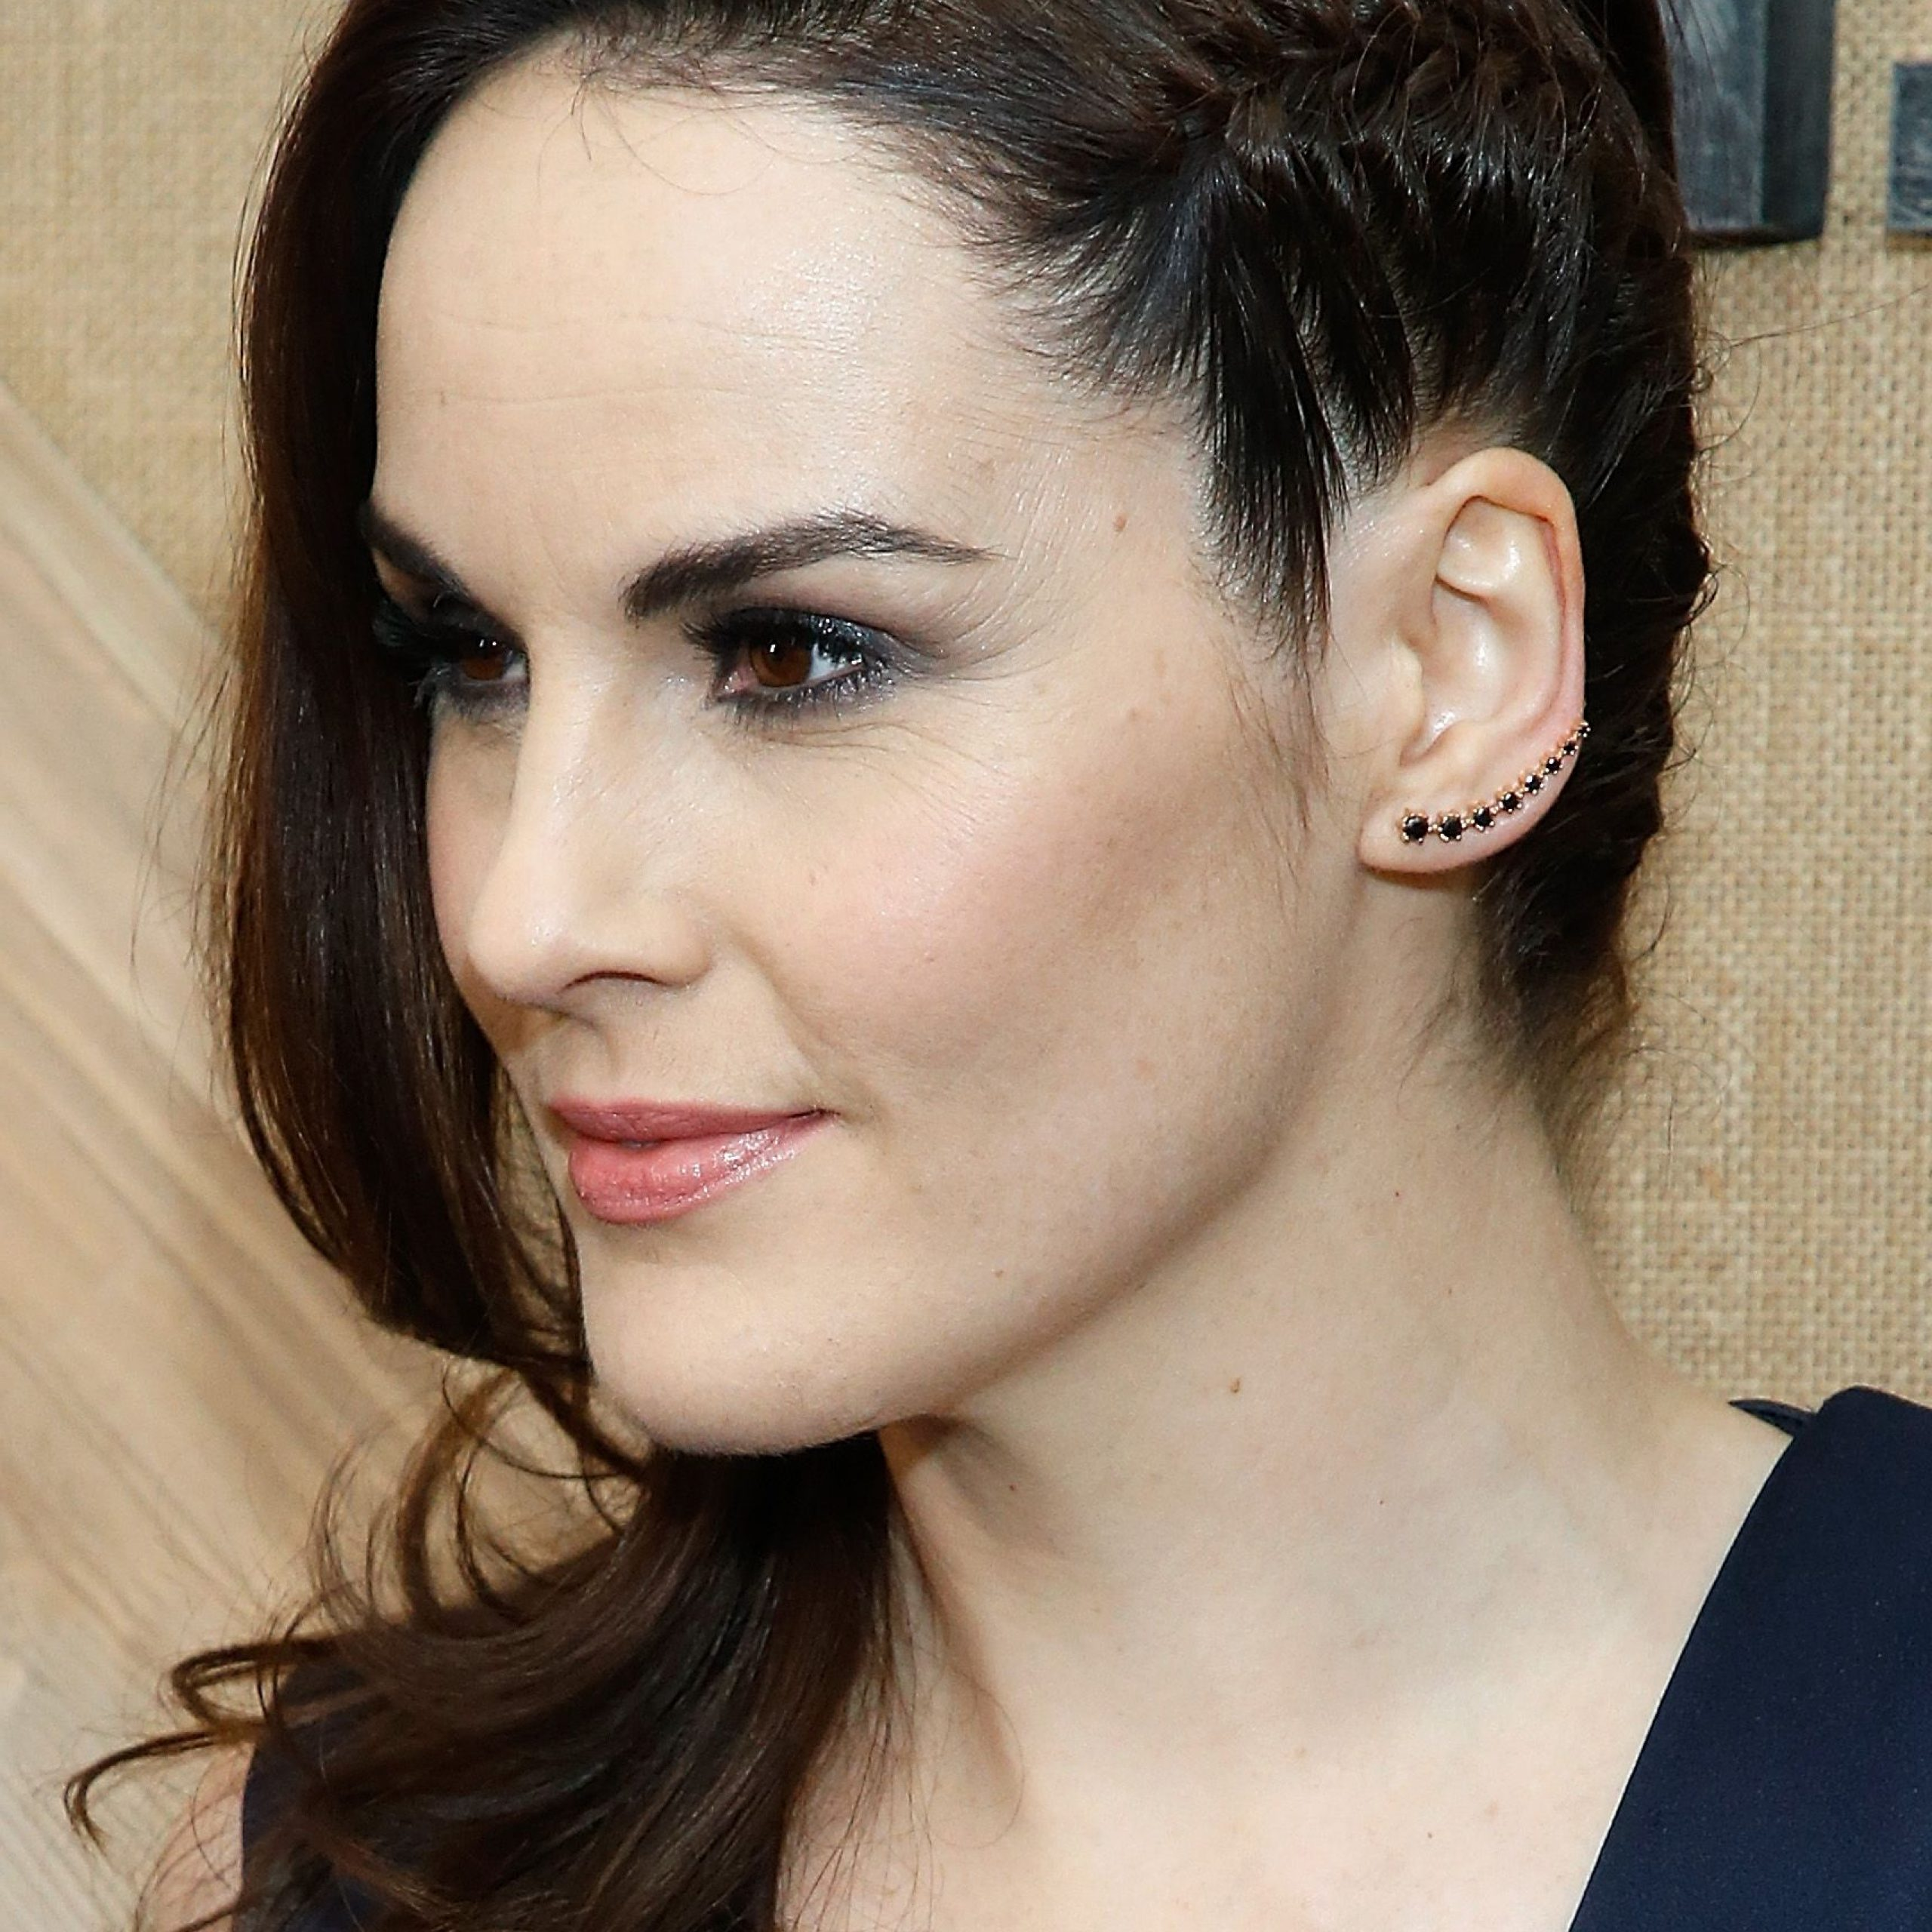 Well Liked Faux Undercut Braid Hairstyles With 60 Easy Braided Hairstyles – Cool Braid How To's & Ideas (View 20 of 20)